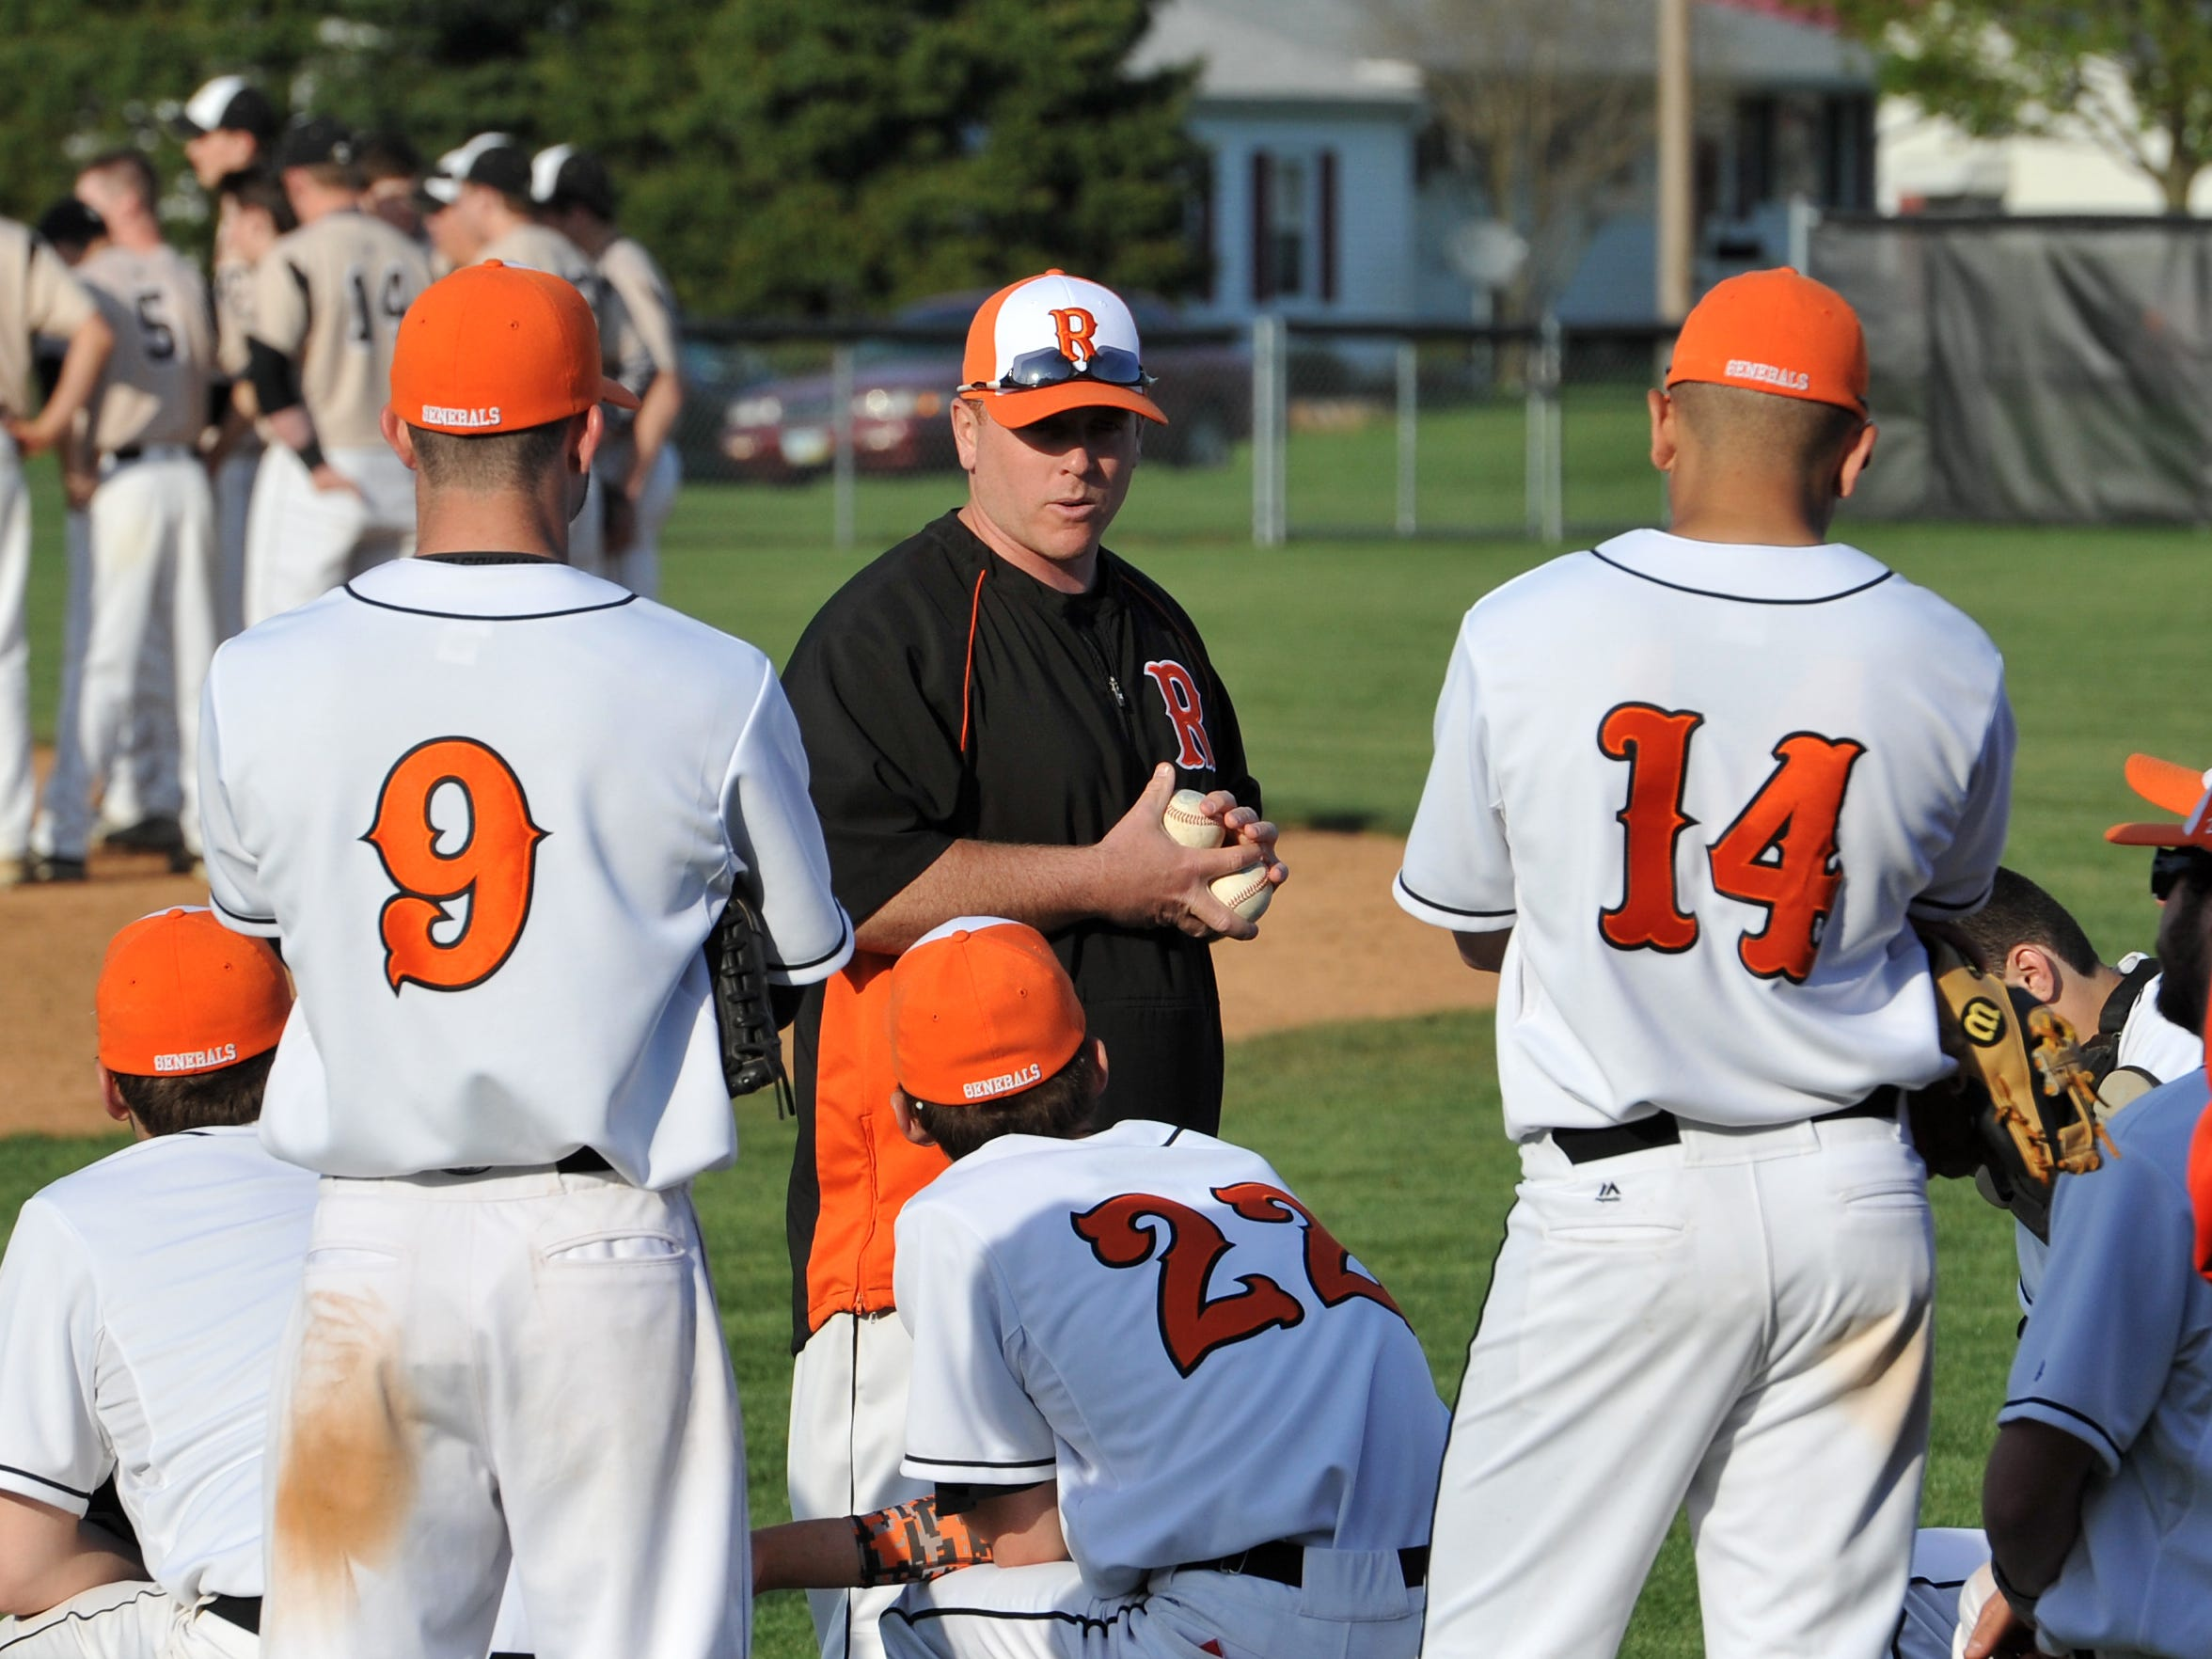 Ridgewood Varsity Baseball Coach Chad Lahna talks with his players after their 2 to 1 victory over TCC Tuesday evening.